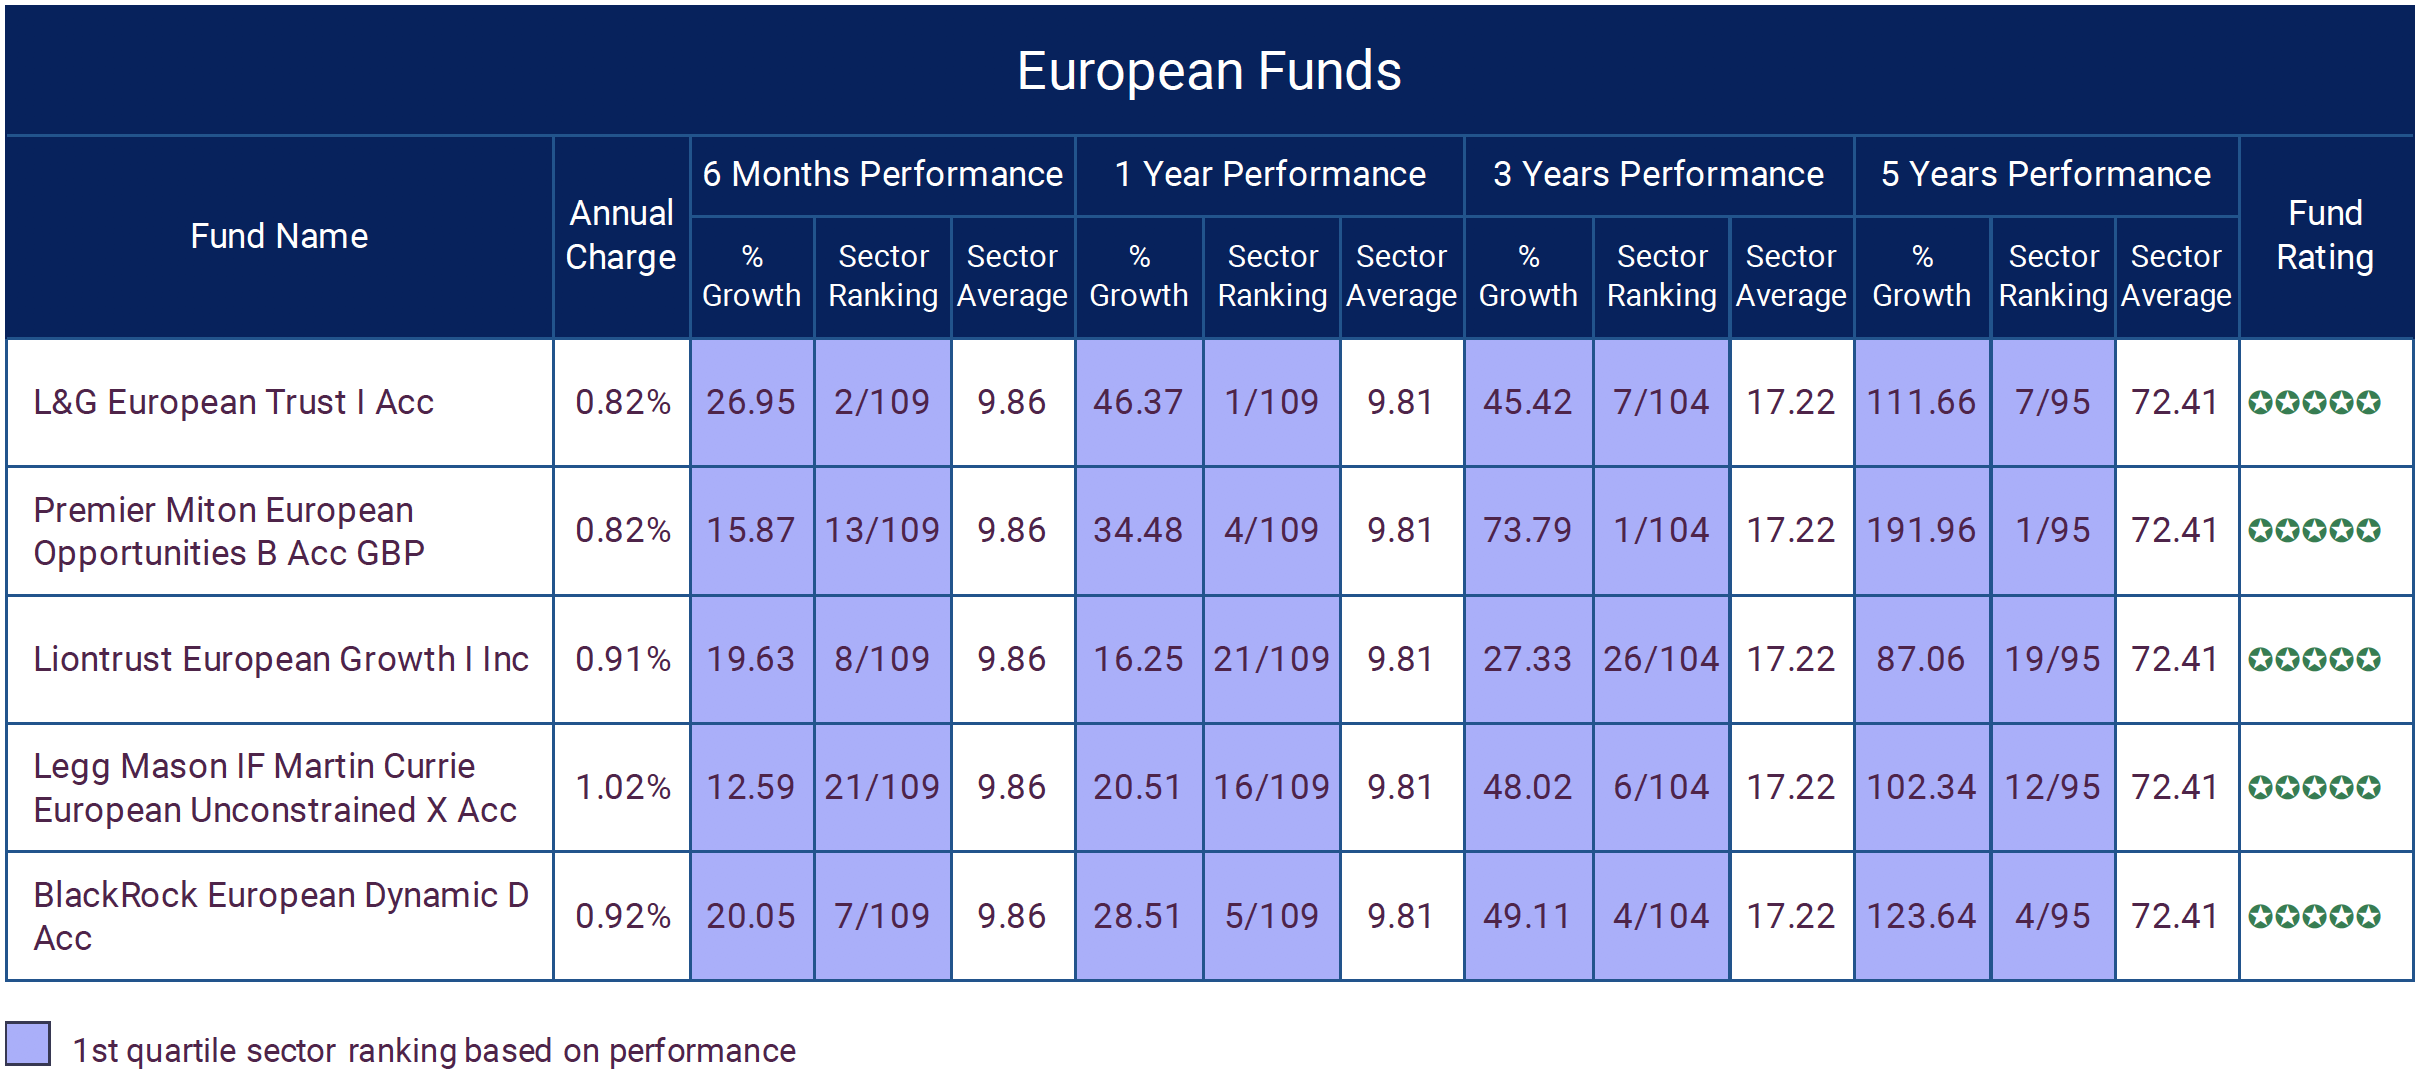 EUROPEAN FUNDS MARCH 2021